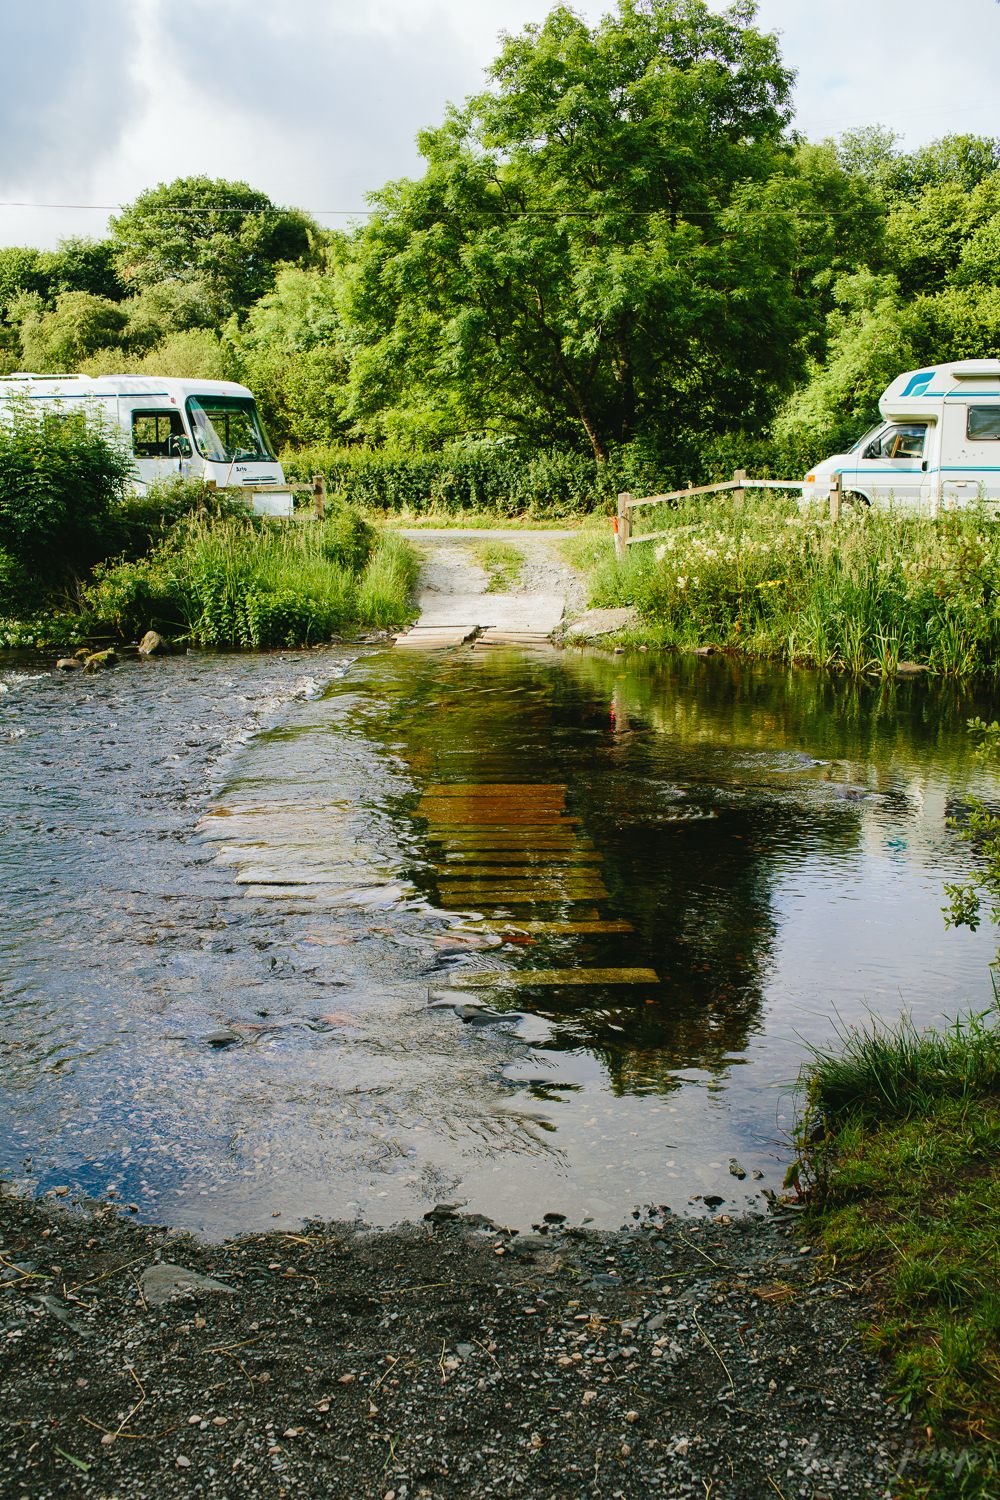 724aa-crowninn_camping_fordcrowninn_camping_ford.jpg